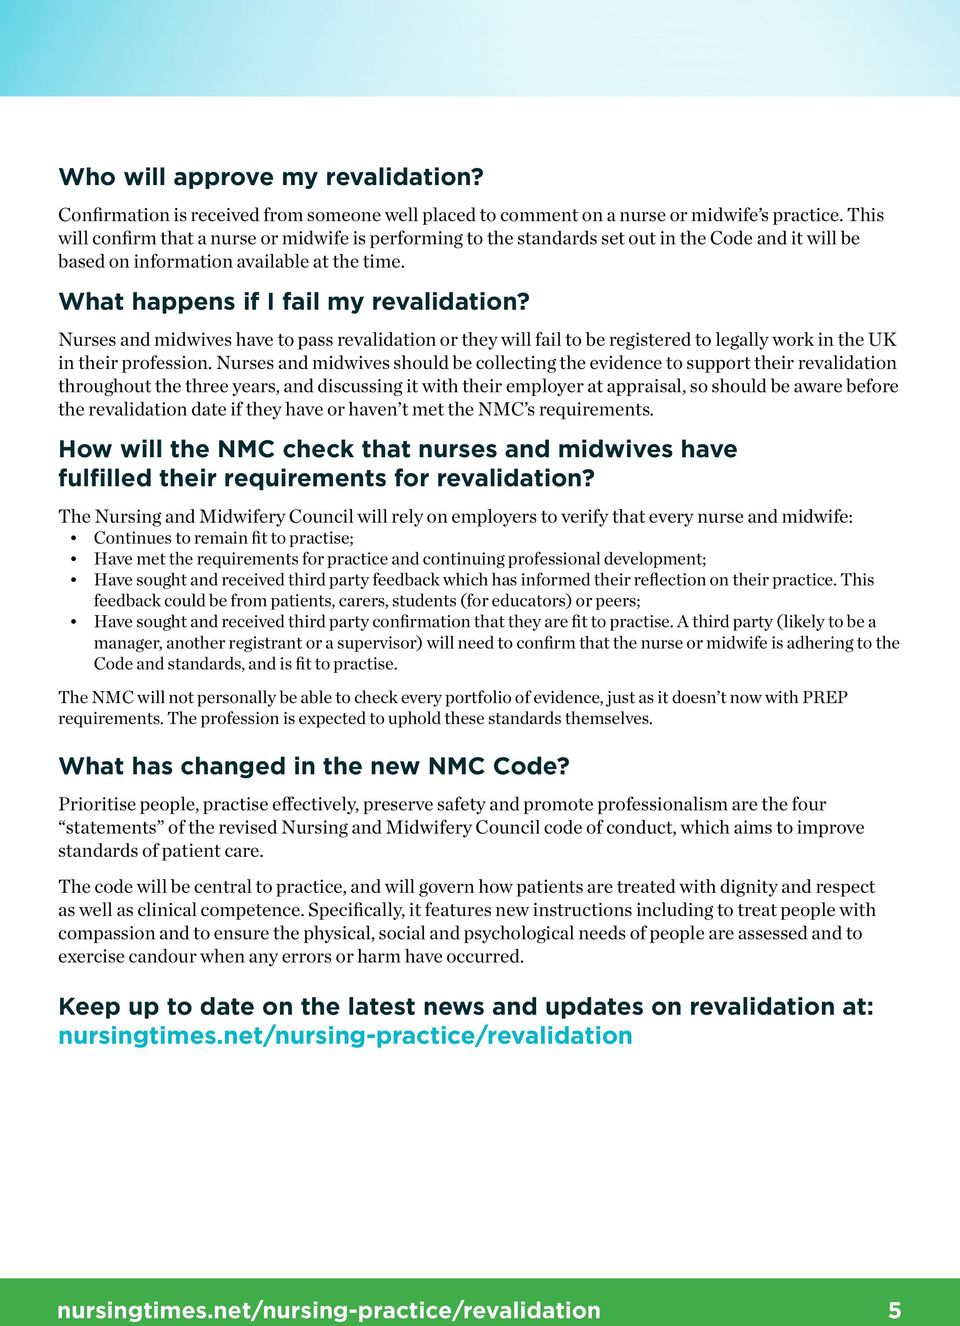 Nurses and midwives have to pass revalidation or they will fail to be registered to legally work in the UK in their profession.